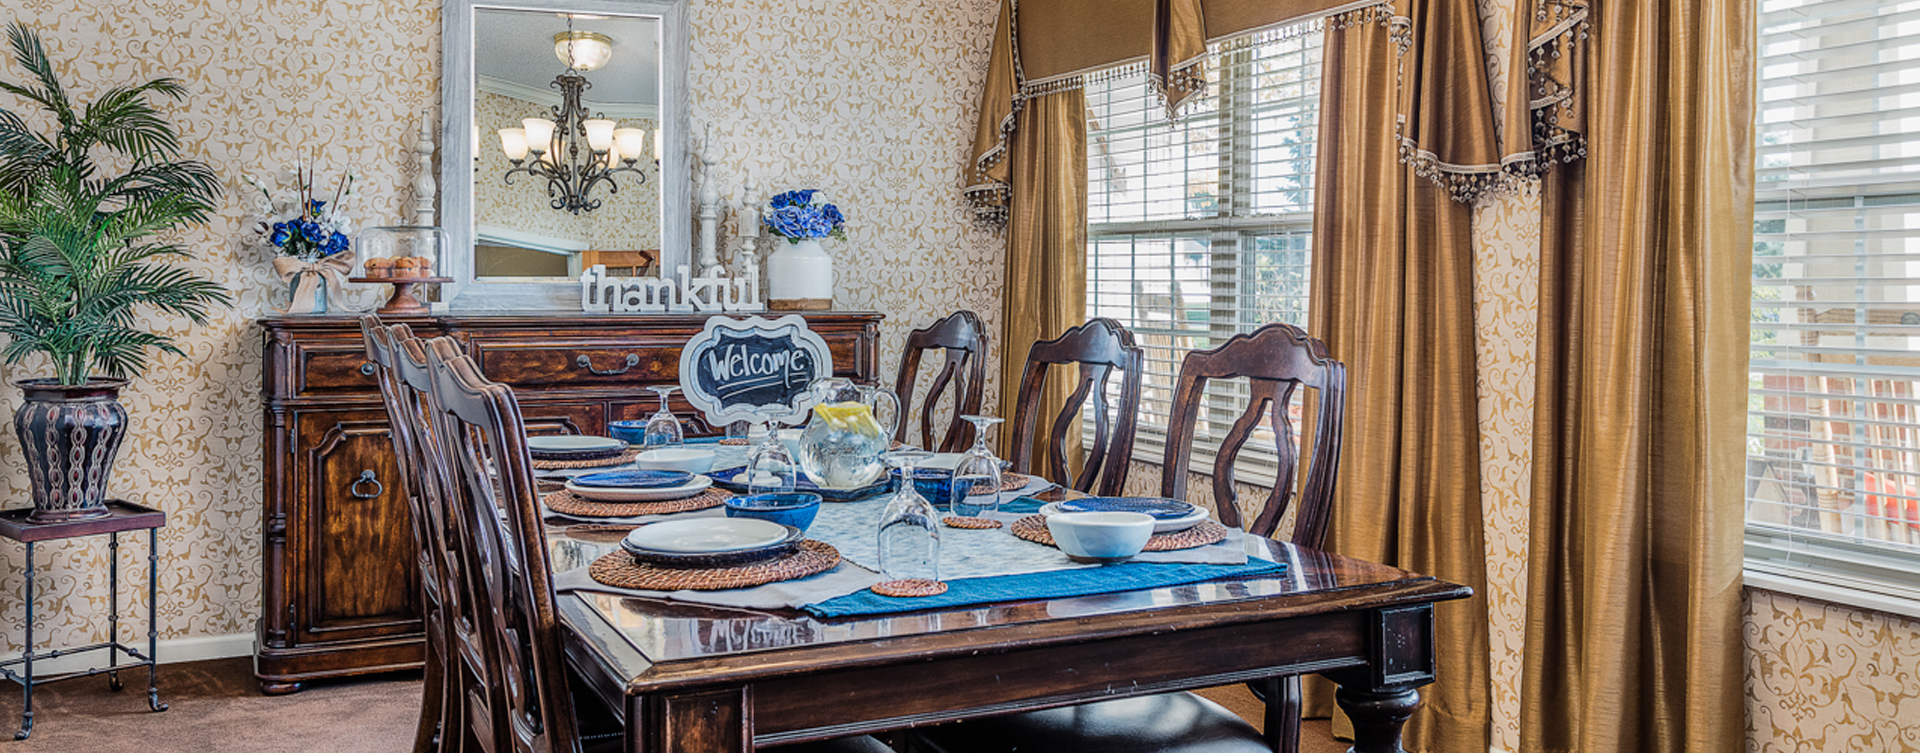 Celebrate special occasions in the private dining room at Bickford of Fort Dodge